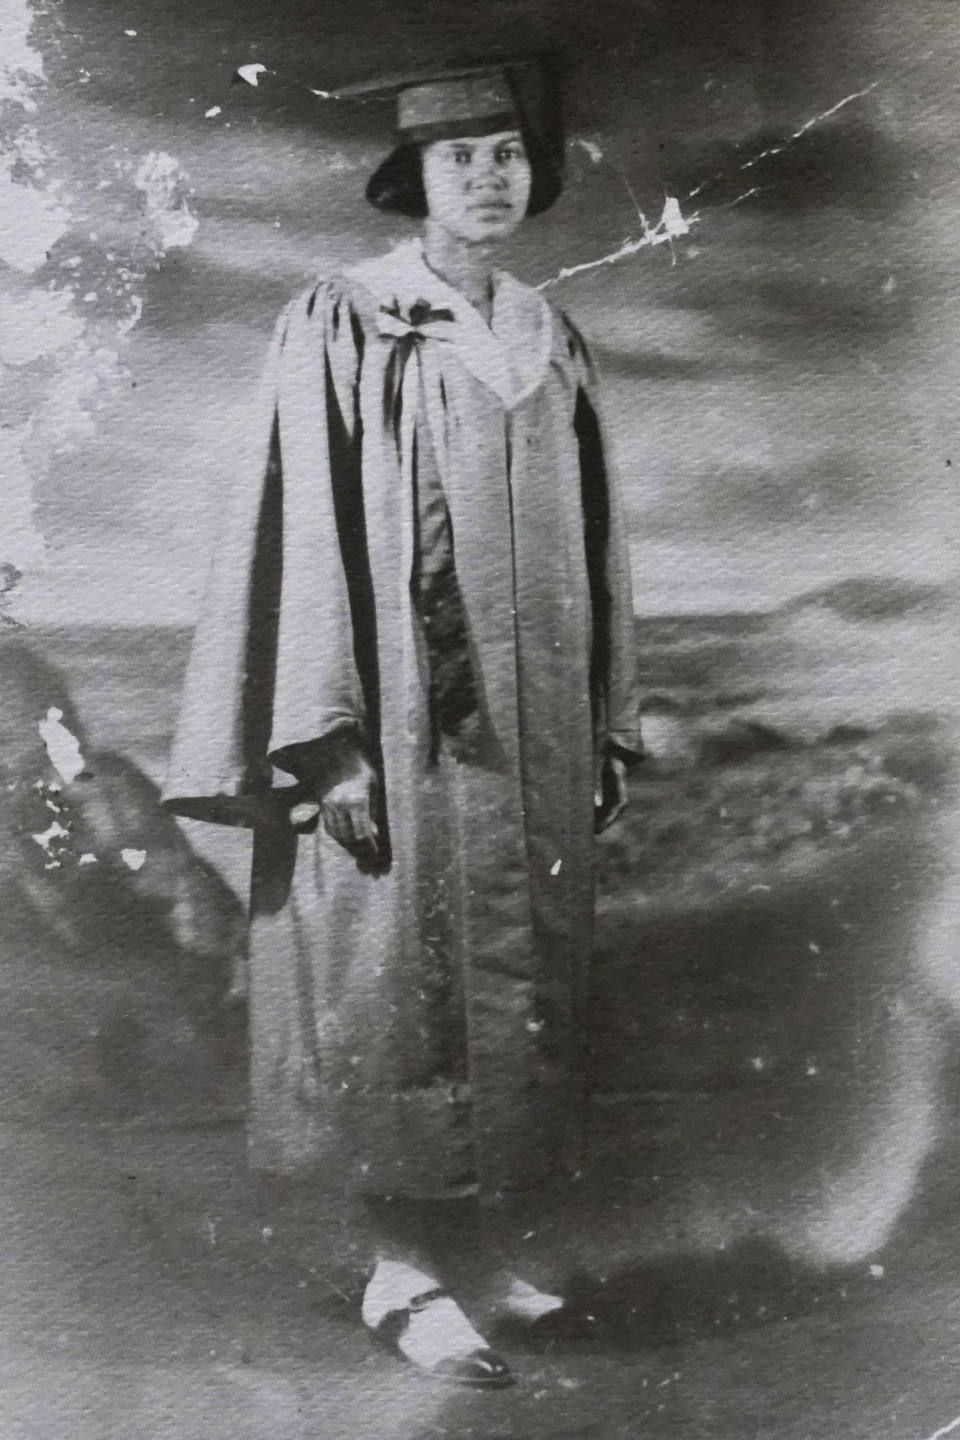 This photo provided by Carolyn Roberts of the Gibbs family shows Tulsa Race Massacre survivor Ernestine Alpha Gibbs in her 1923 high school graduation photo in Tulsa, Okla. (Courtesy Carolyn Roberts via AP)